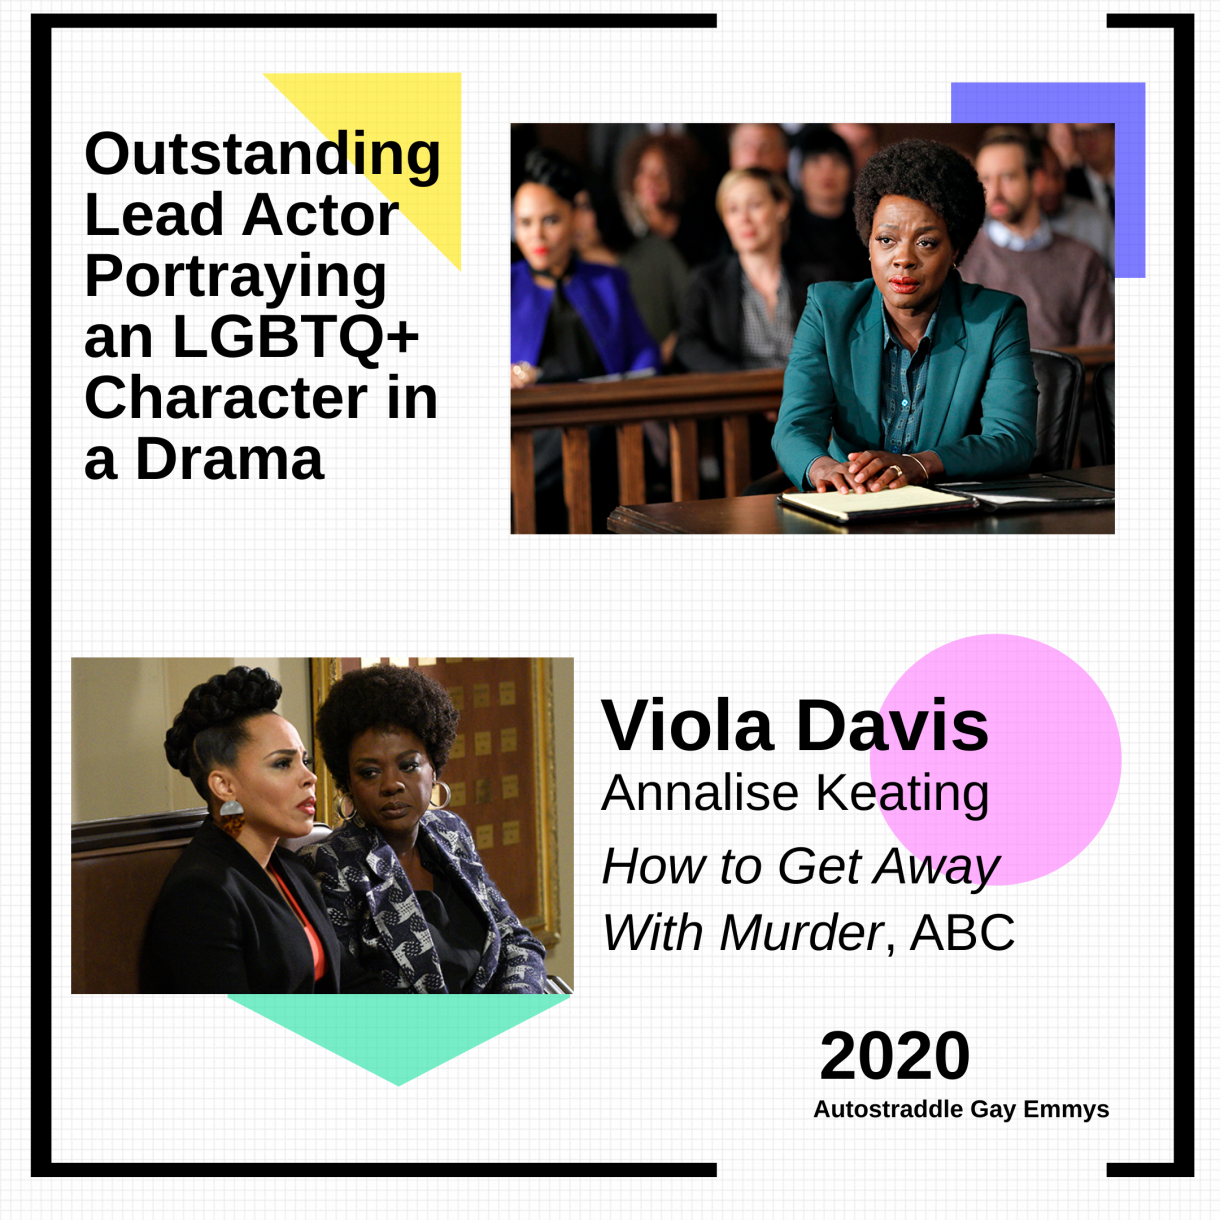 Graphic announcing Outstanding Lead Actor Portraying an LGBTQ+ Character in a Drama winner is Viola Davis as Annalise Keating, How to Get Away With Murder